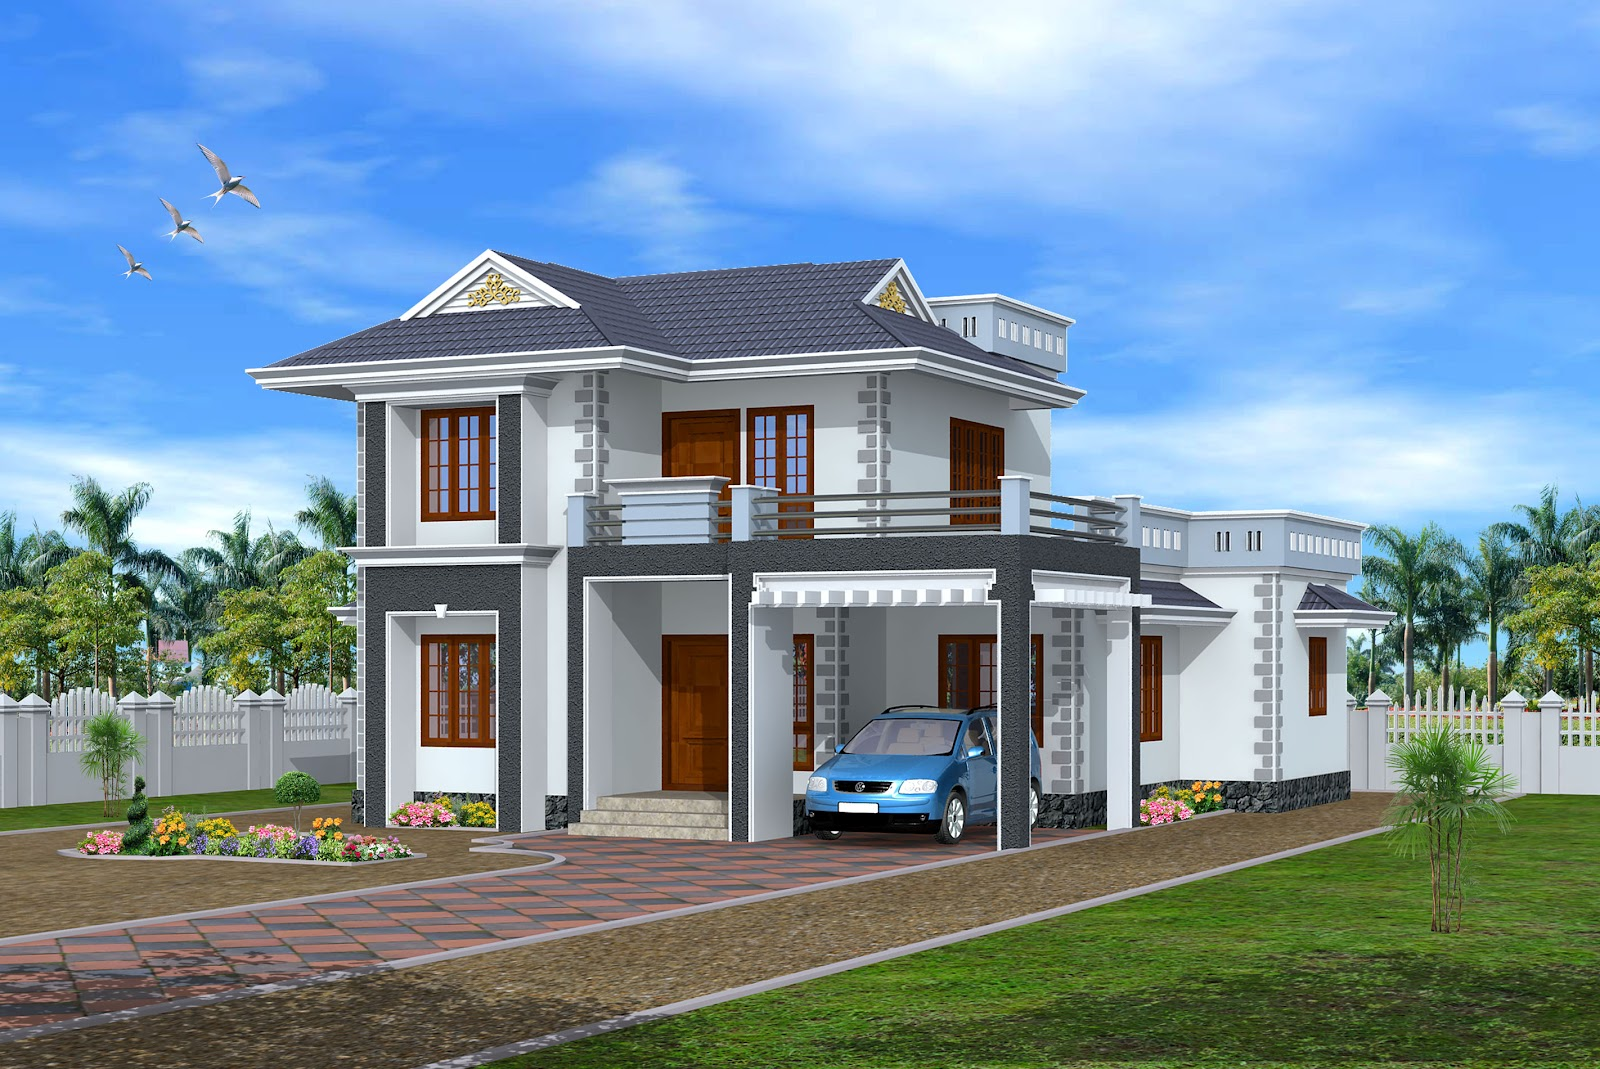 New home designs latest modern homes exterior designs views for House designs 3d model